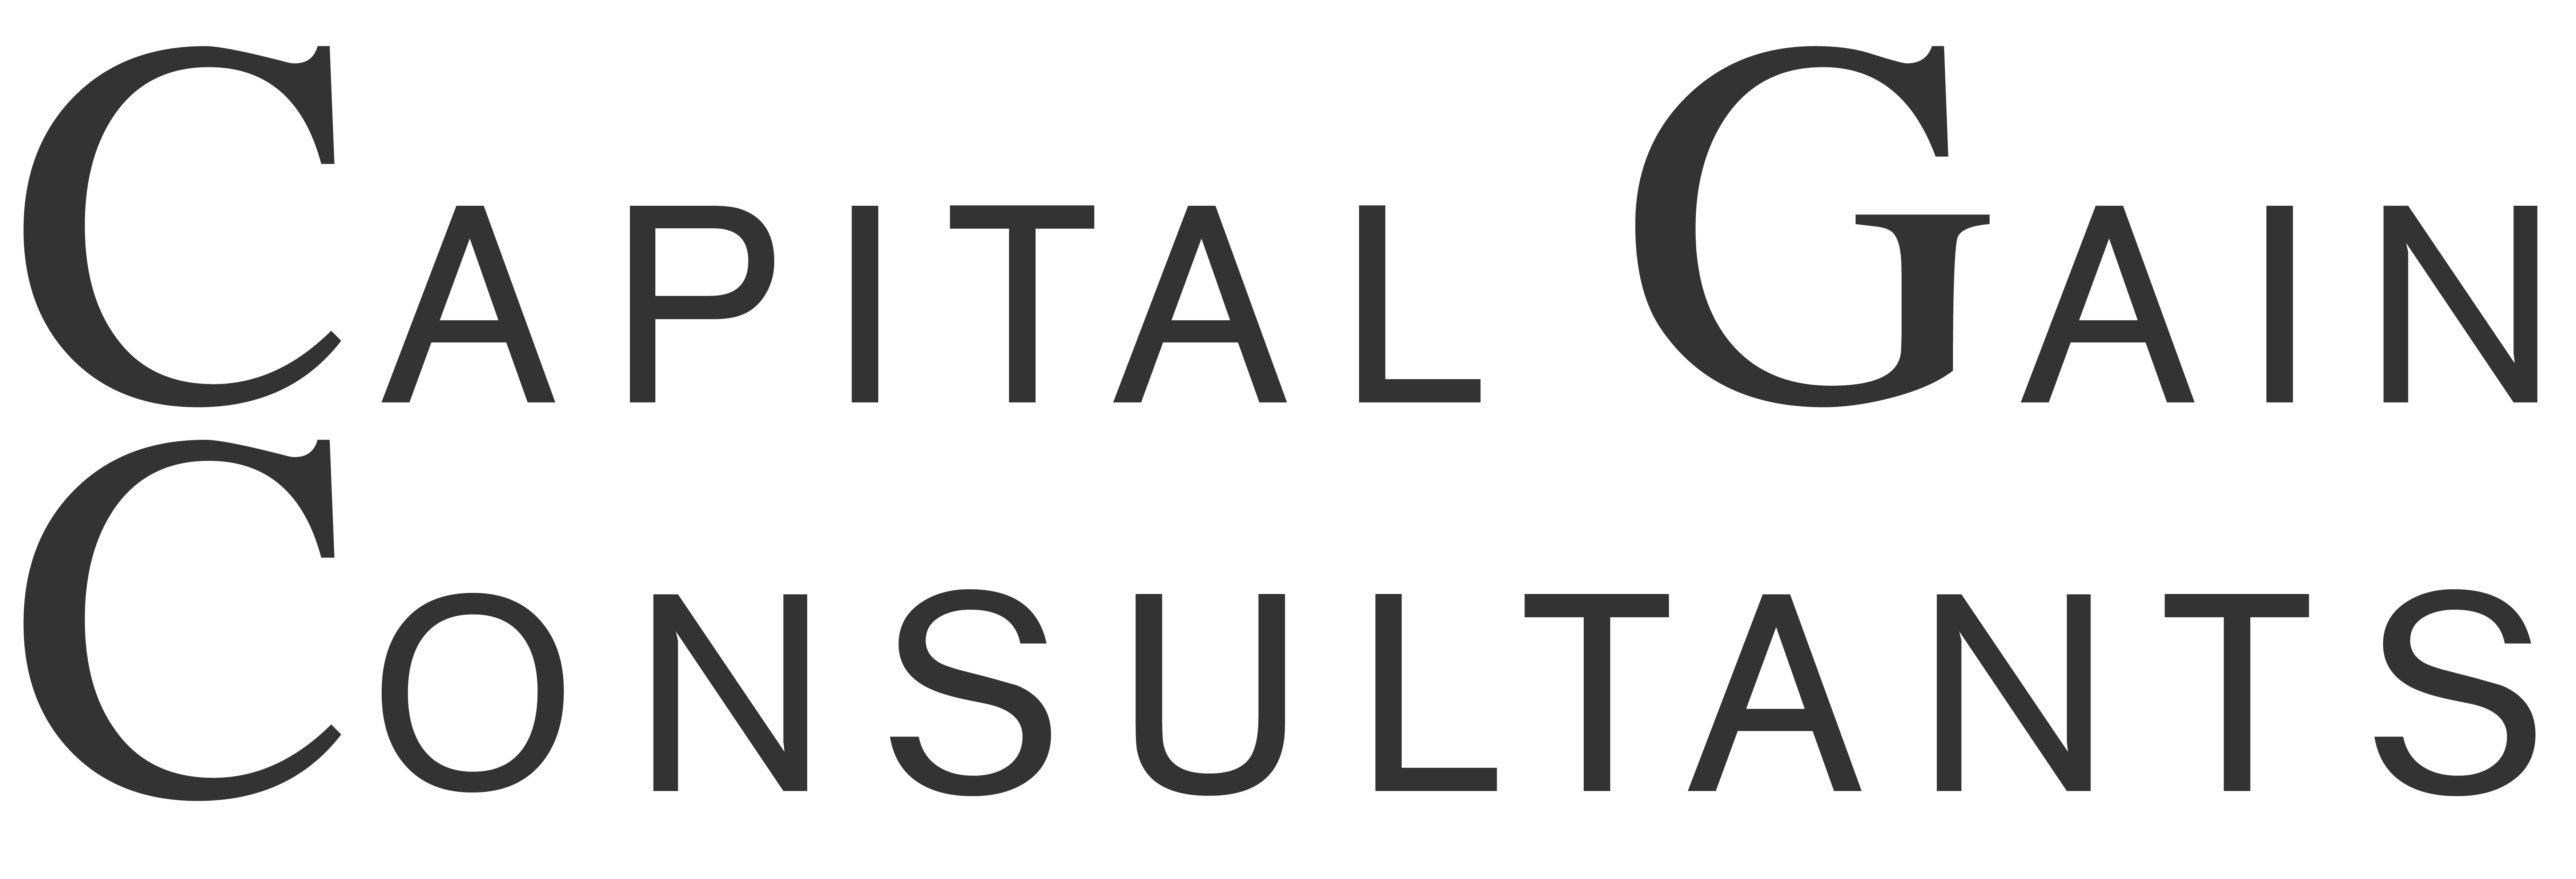 Capital-Gain Consultants